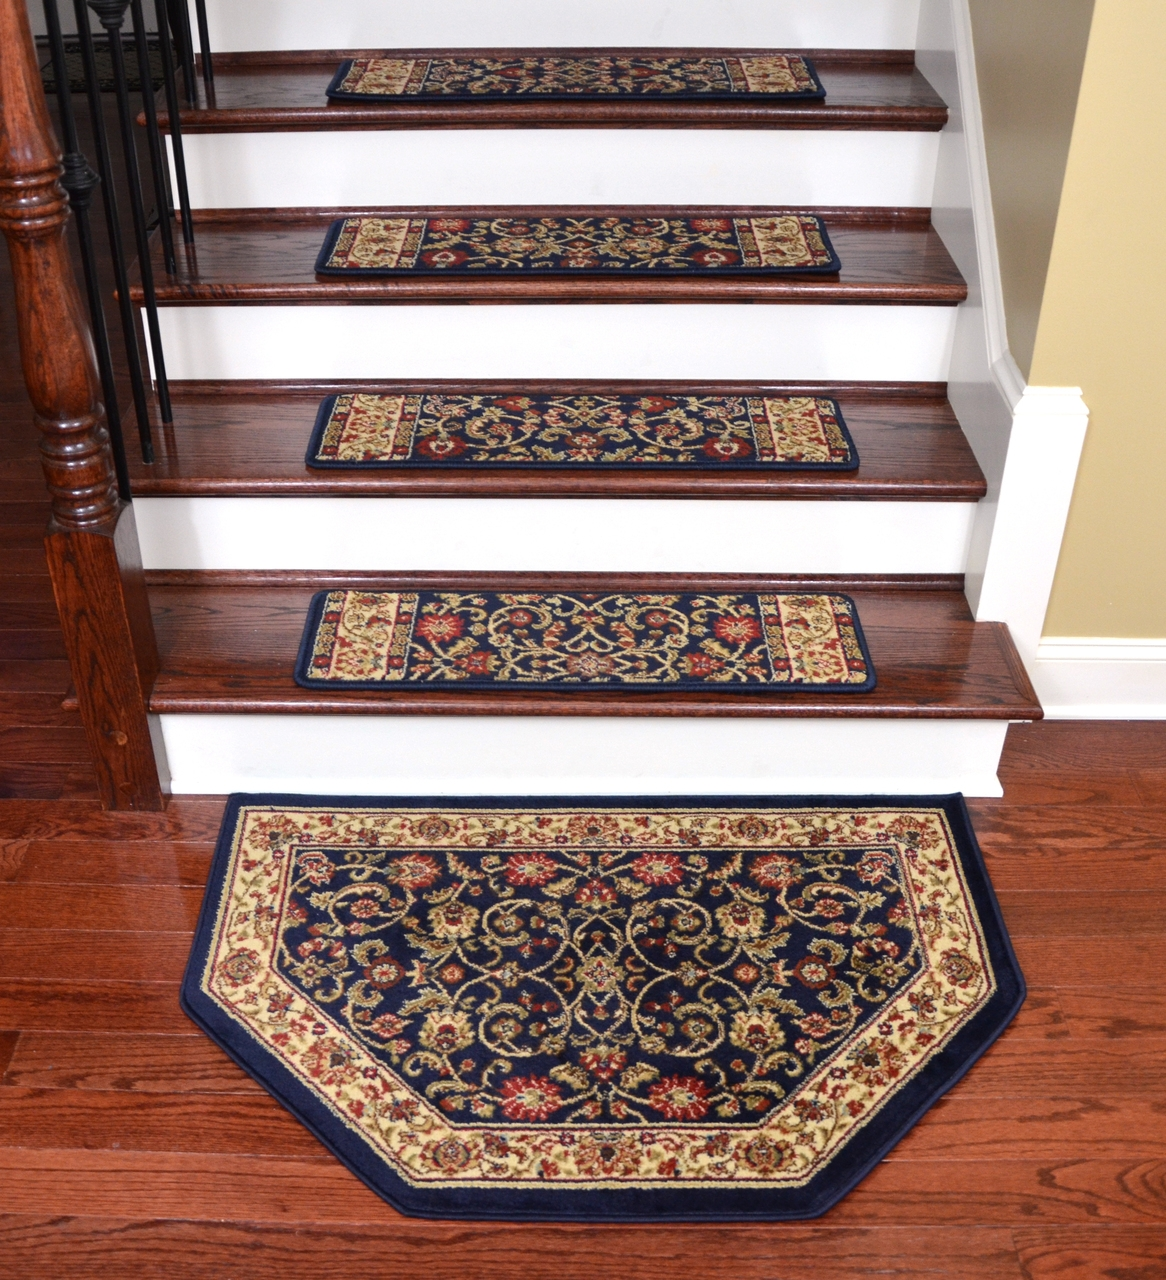 Flooring Pretty Stair Treads Carpet For Stair Decoration Idea Within Stair Tread Rug Holders (View 19 of 20)